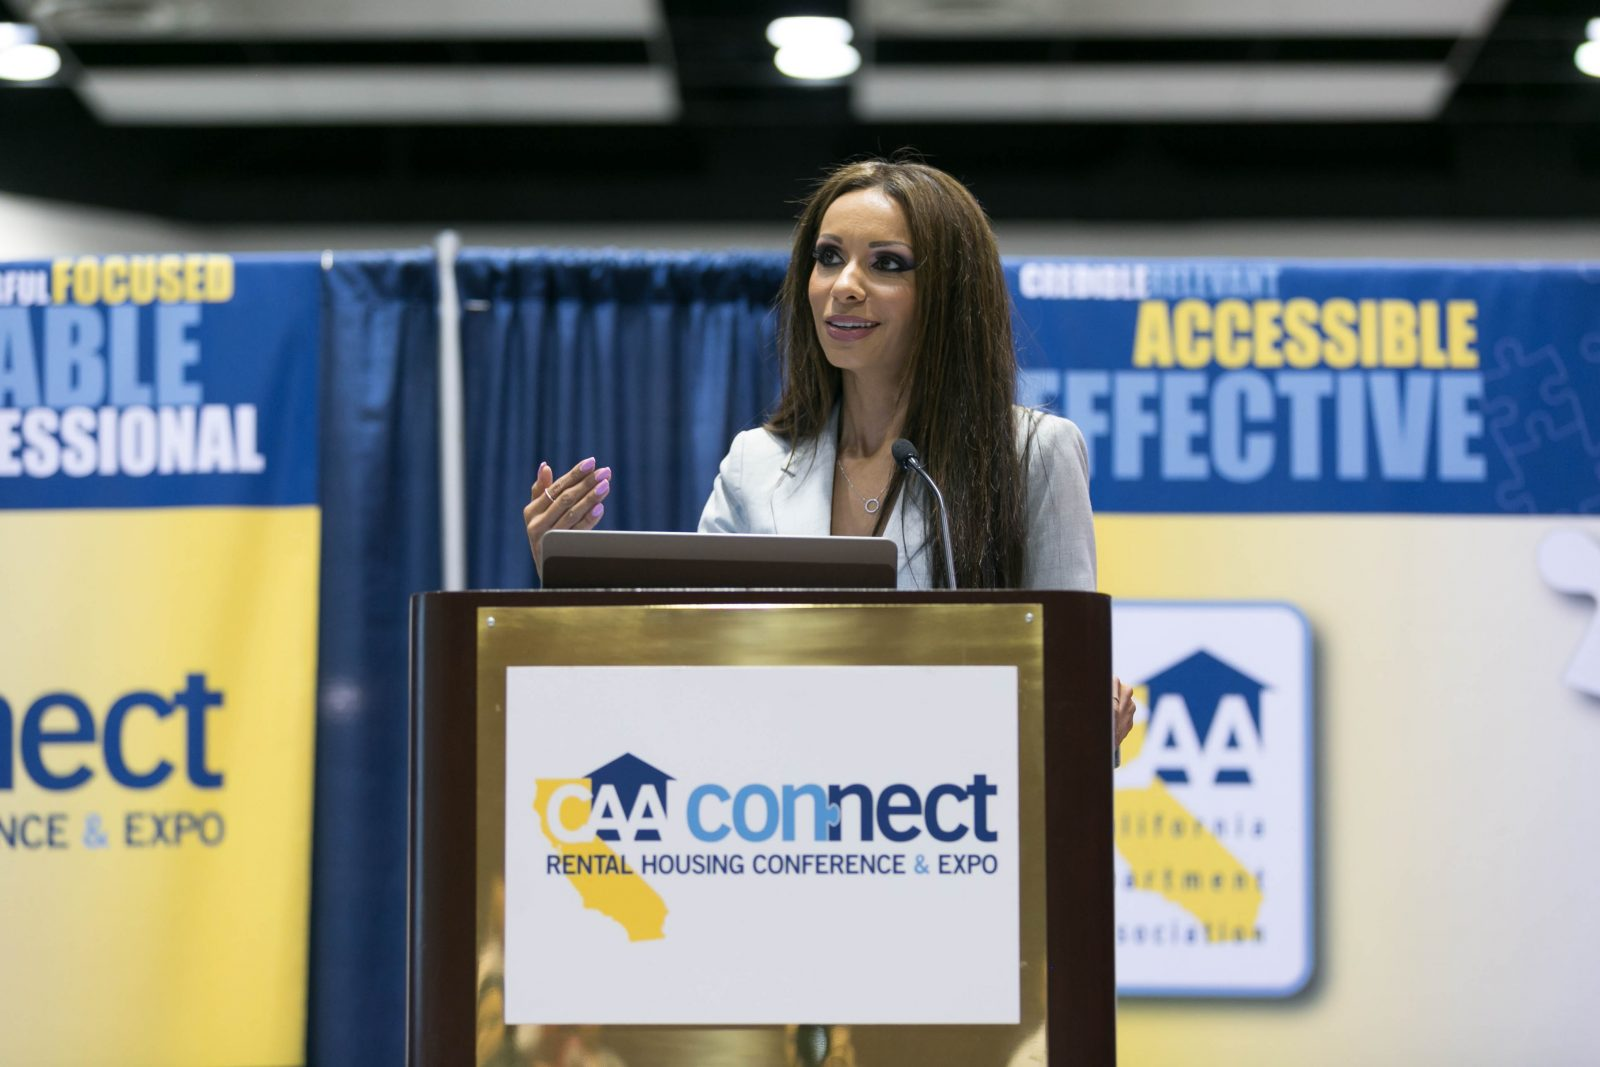 Caa Connect Attracts Big Crowds Big Praise From Attendees